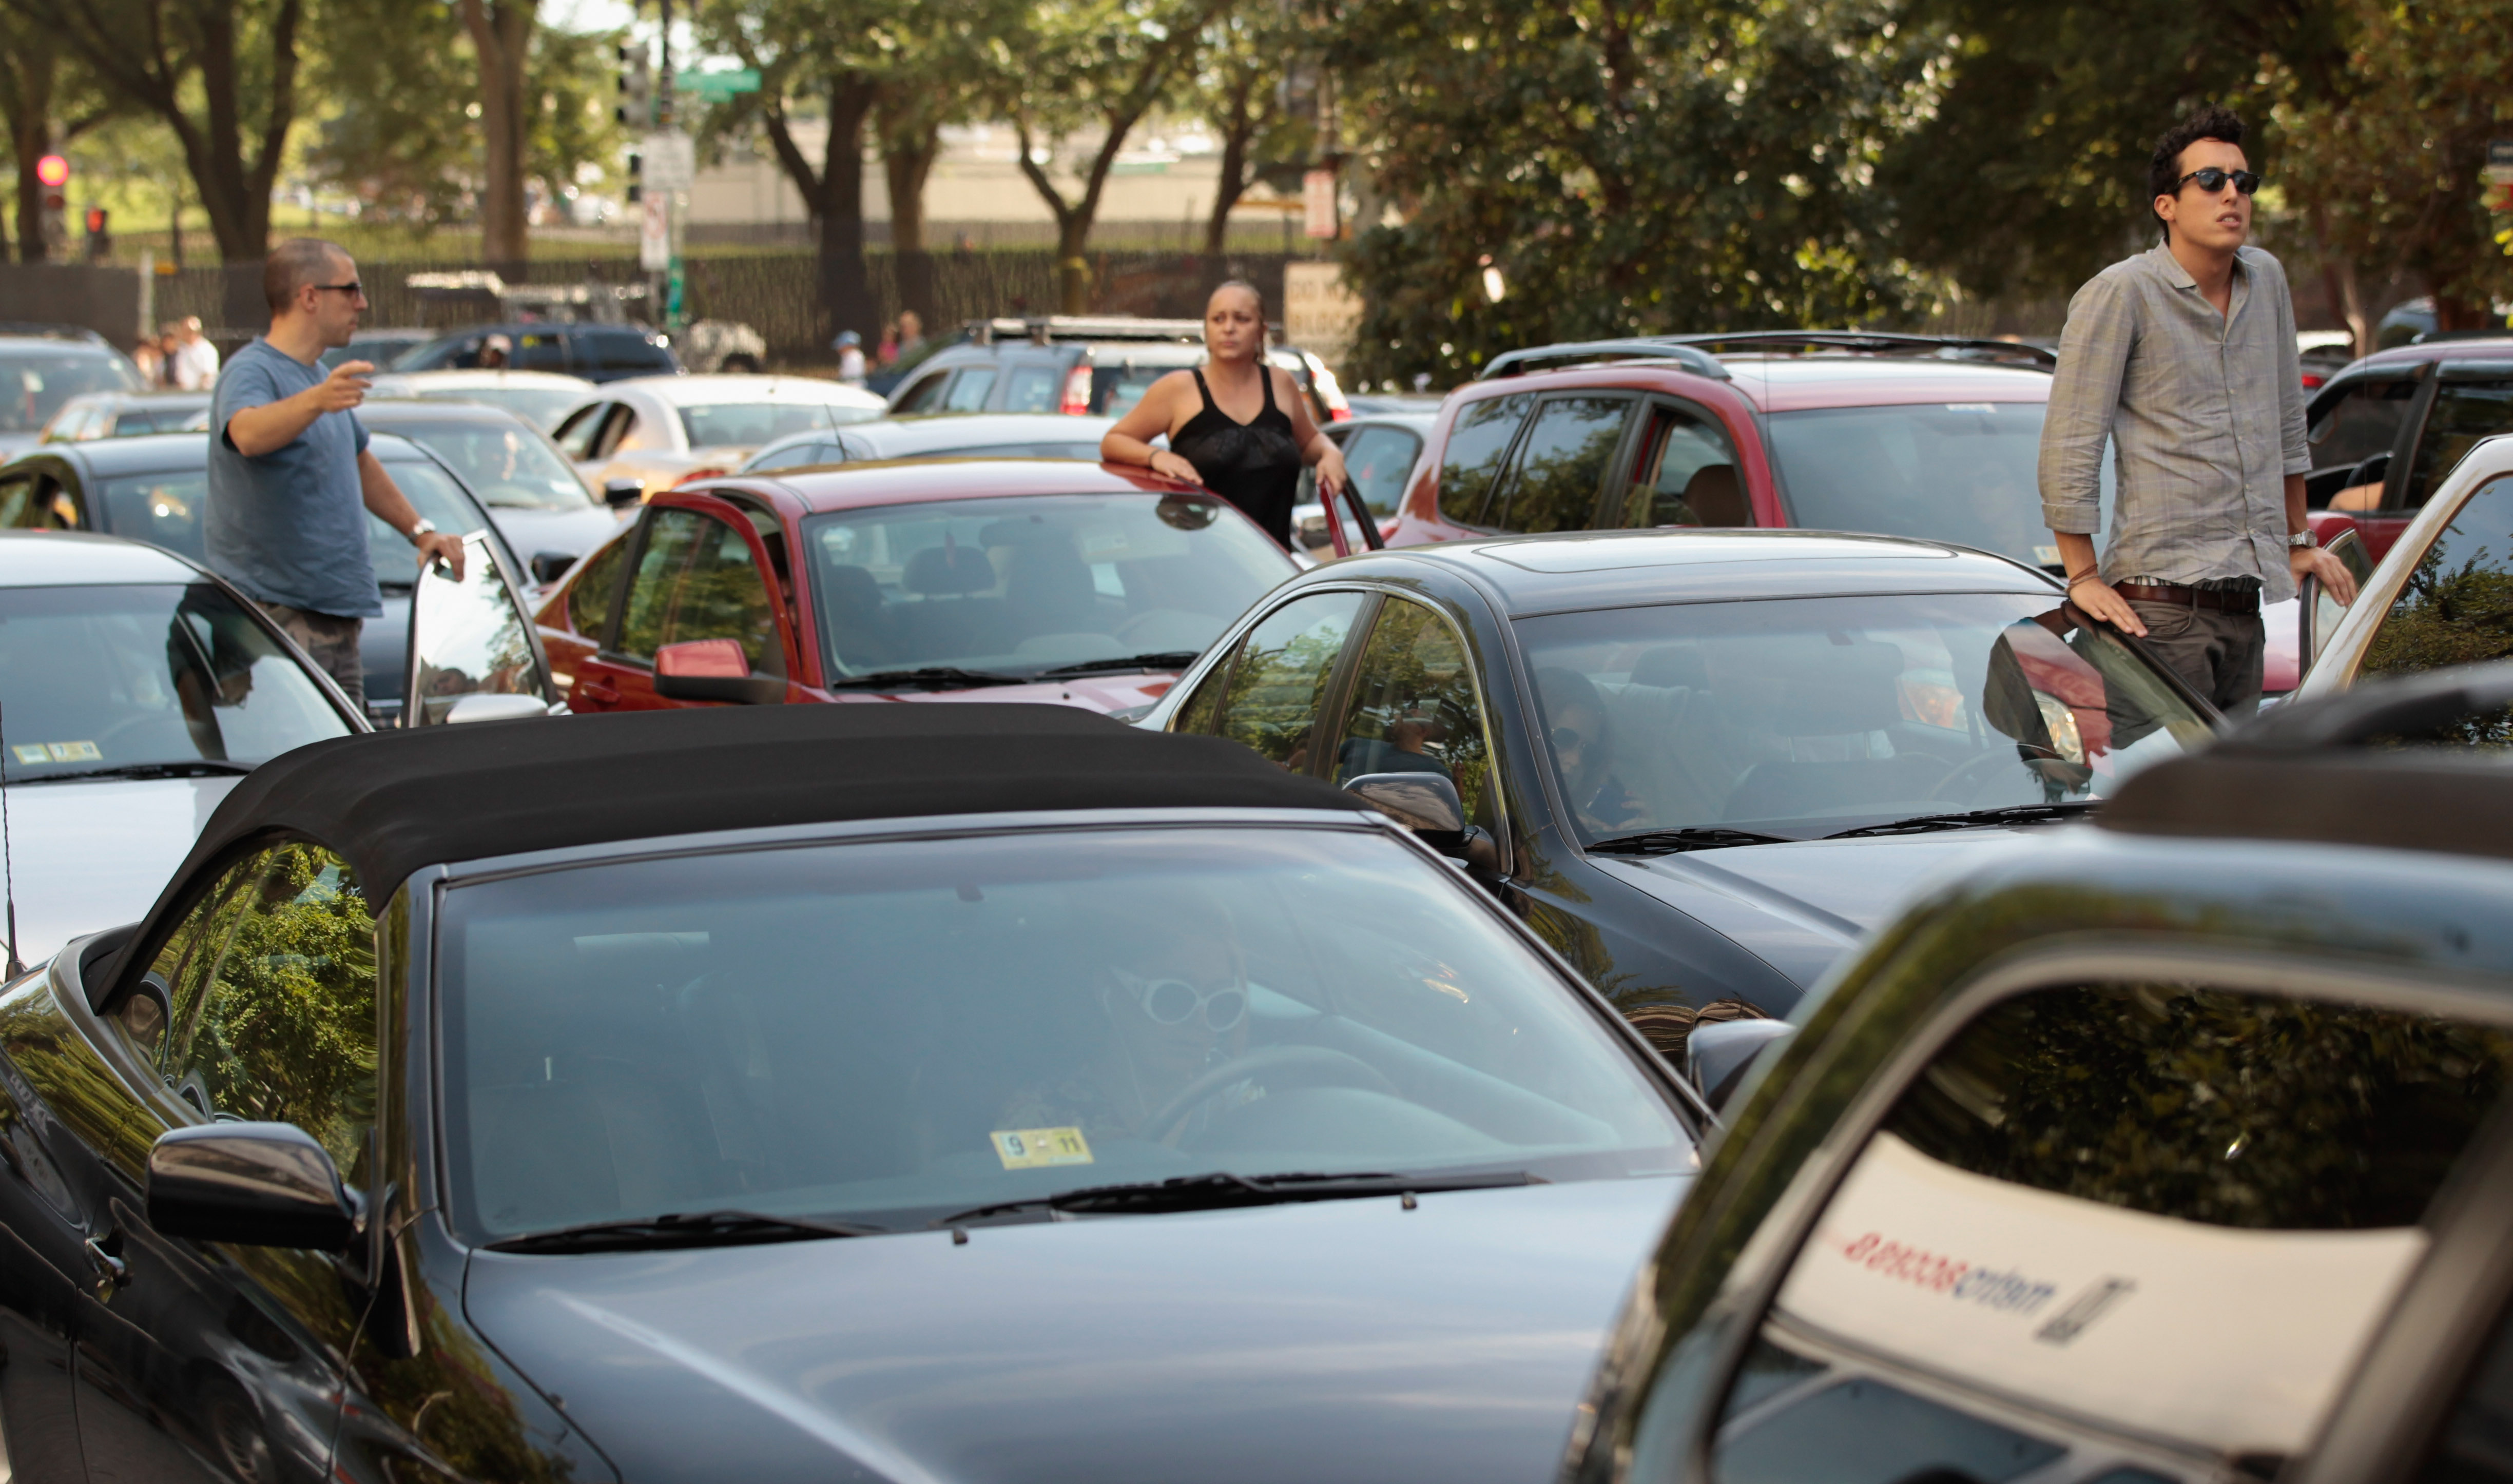 Drivers climb out of their cars to survey a traffic jam on August 23, 2011 in Washington D.C.